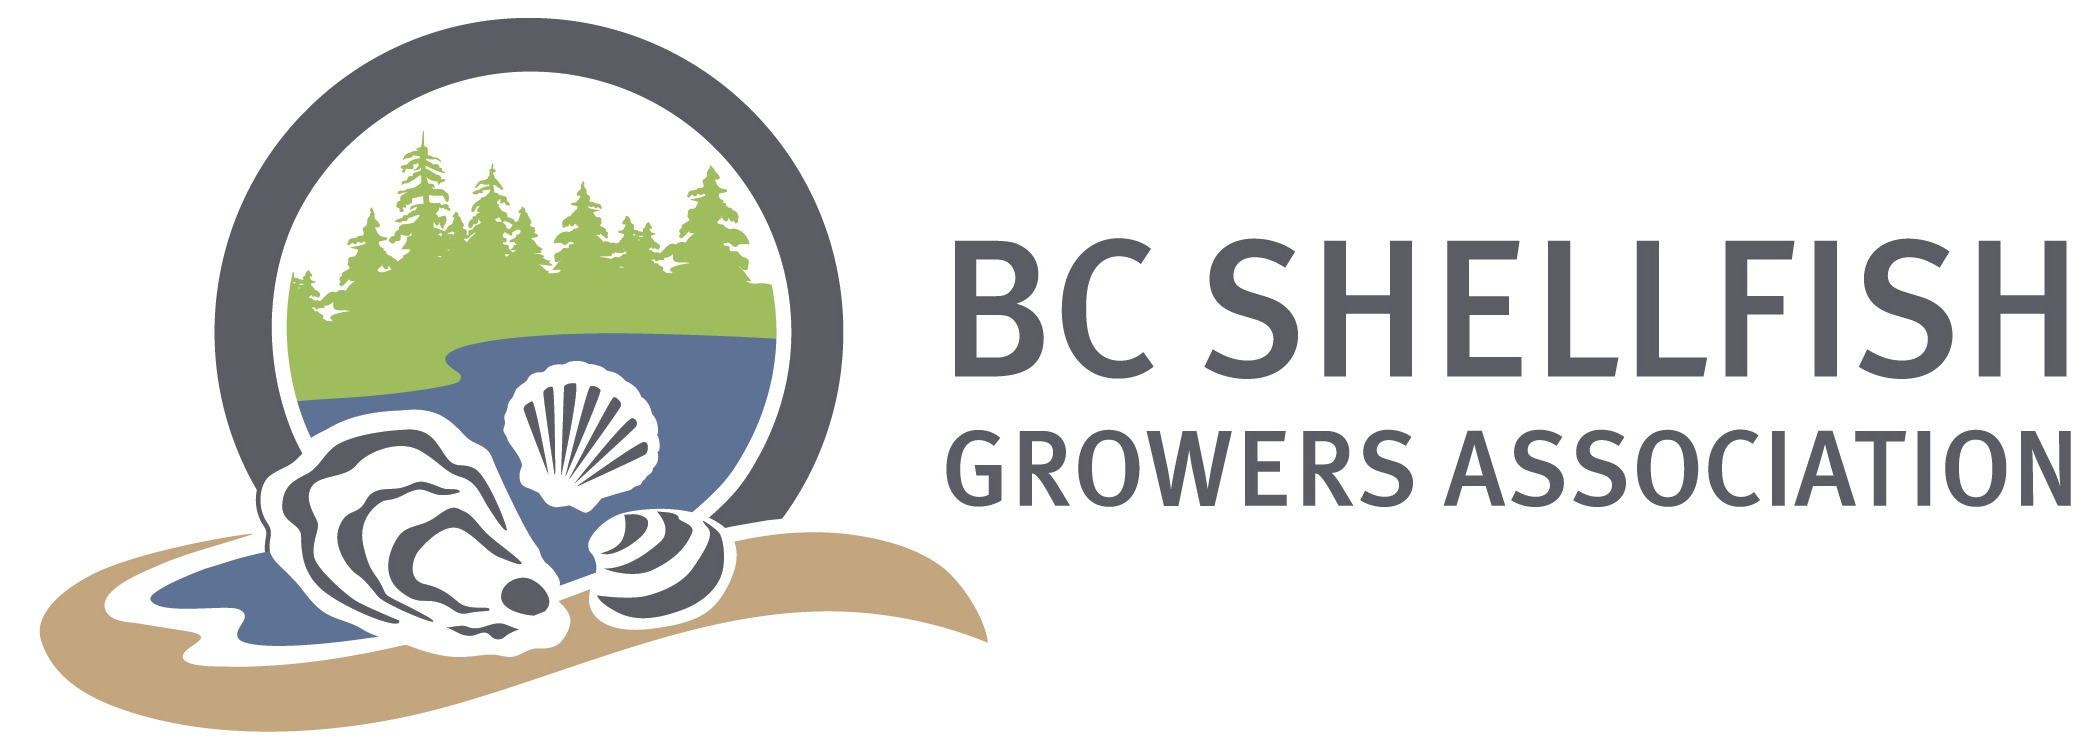 BC Shellfish Growers Association